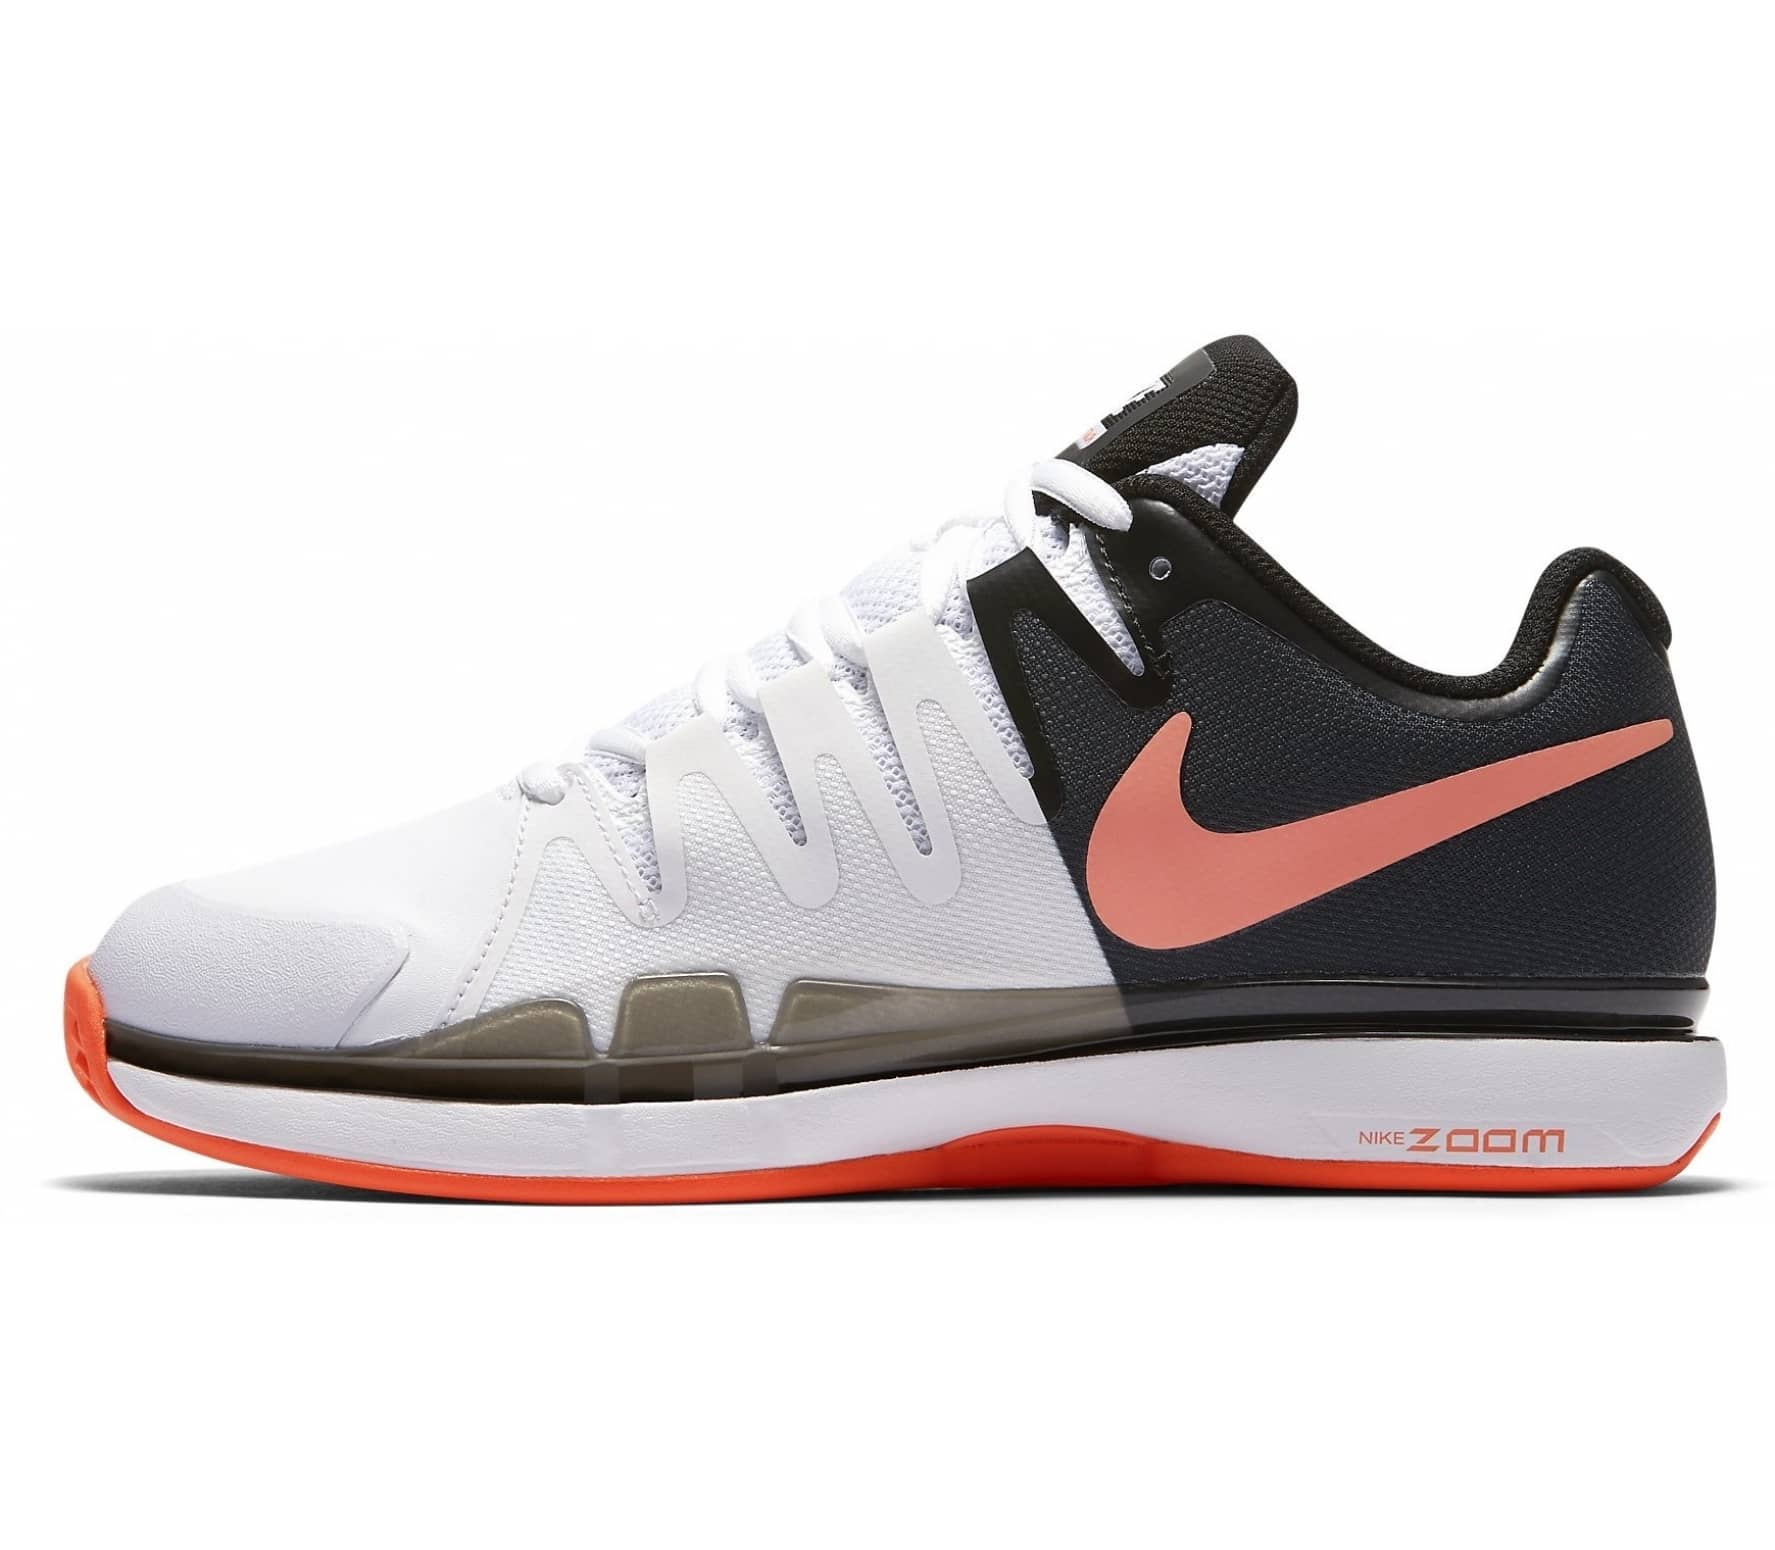 41e599fbdecea4 Nike - Zoom Vapor 9.5 Tour Clay women s tennis shoes (black pink ...